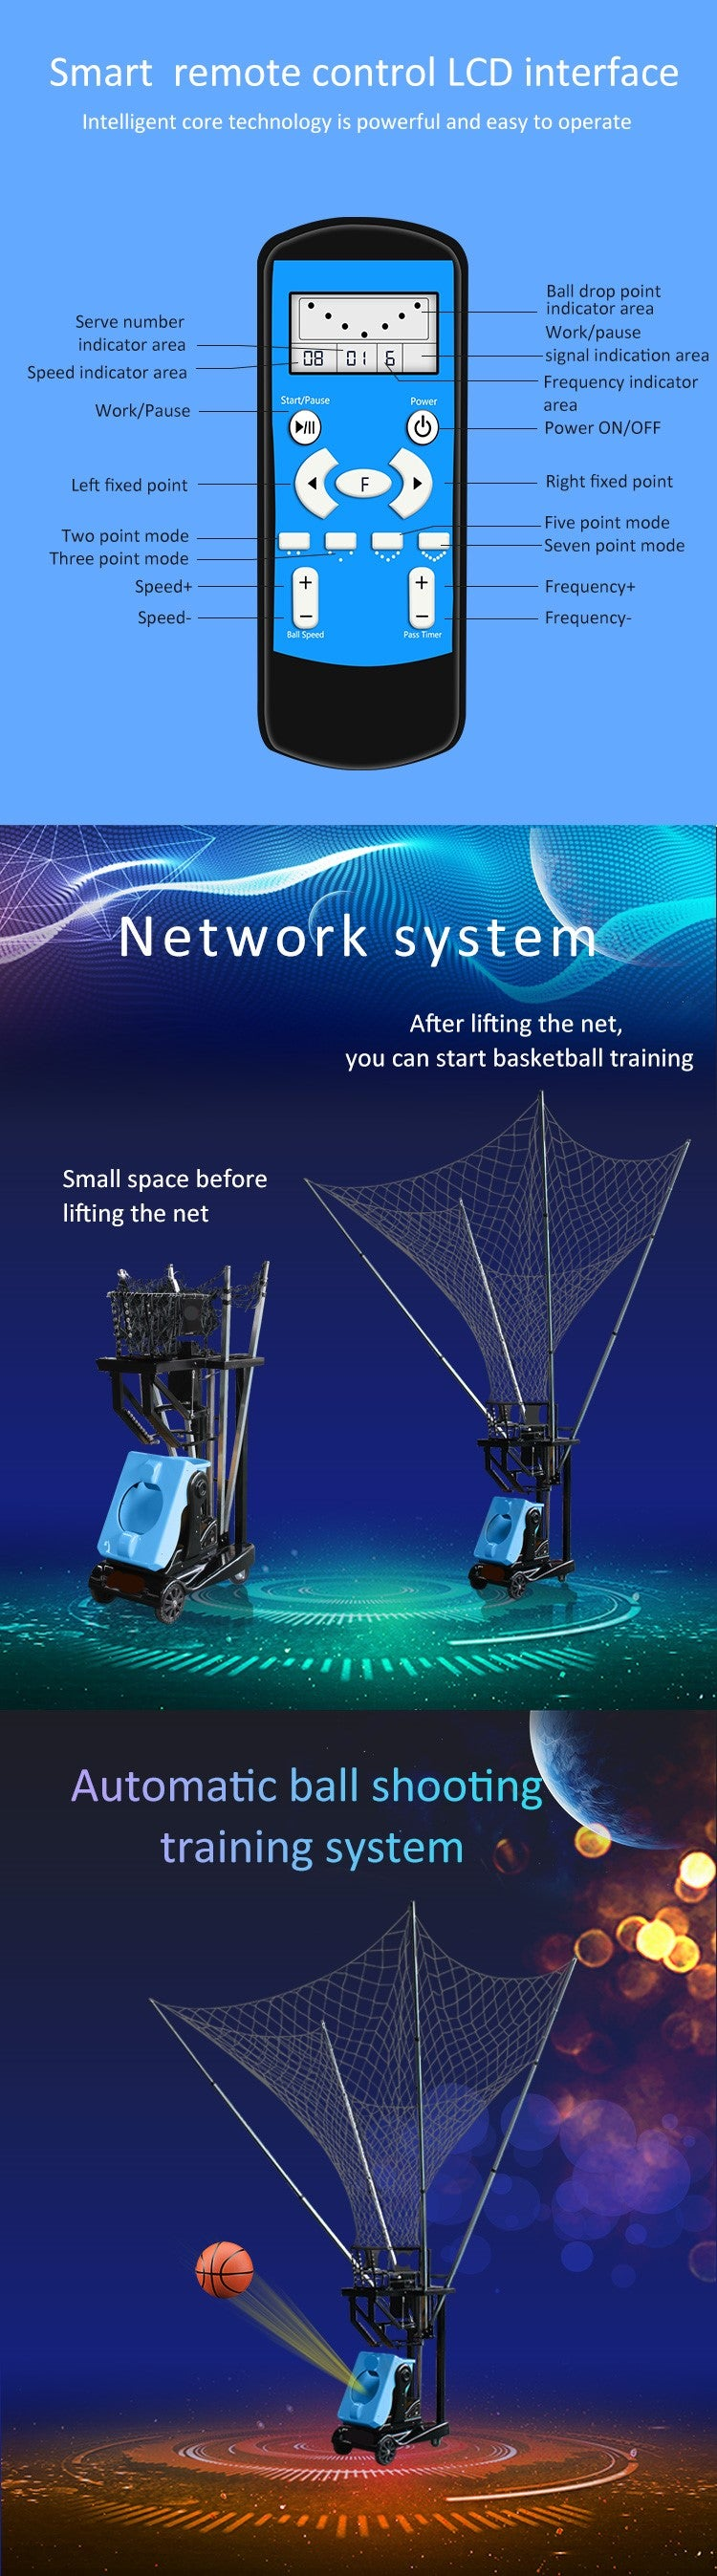 Basketball Ball Throwing Training Machine : LCD display